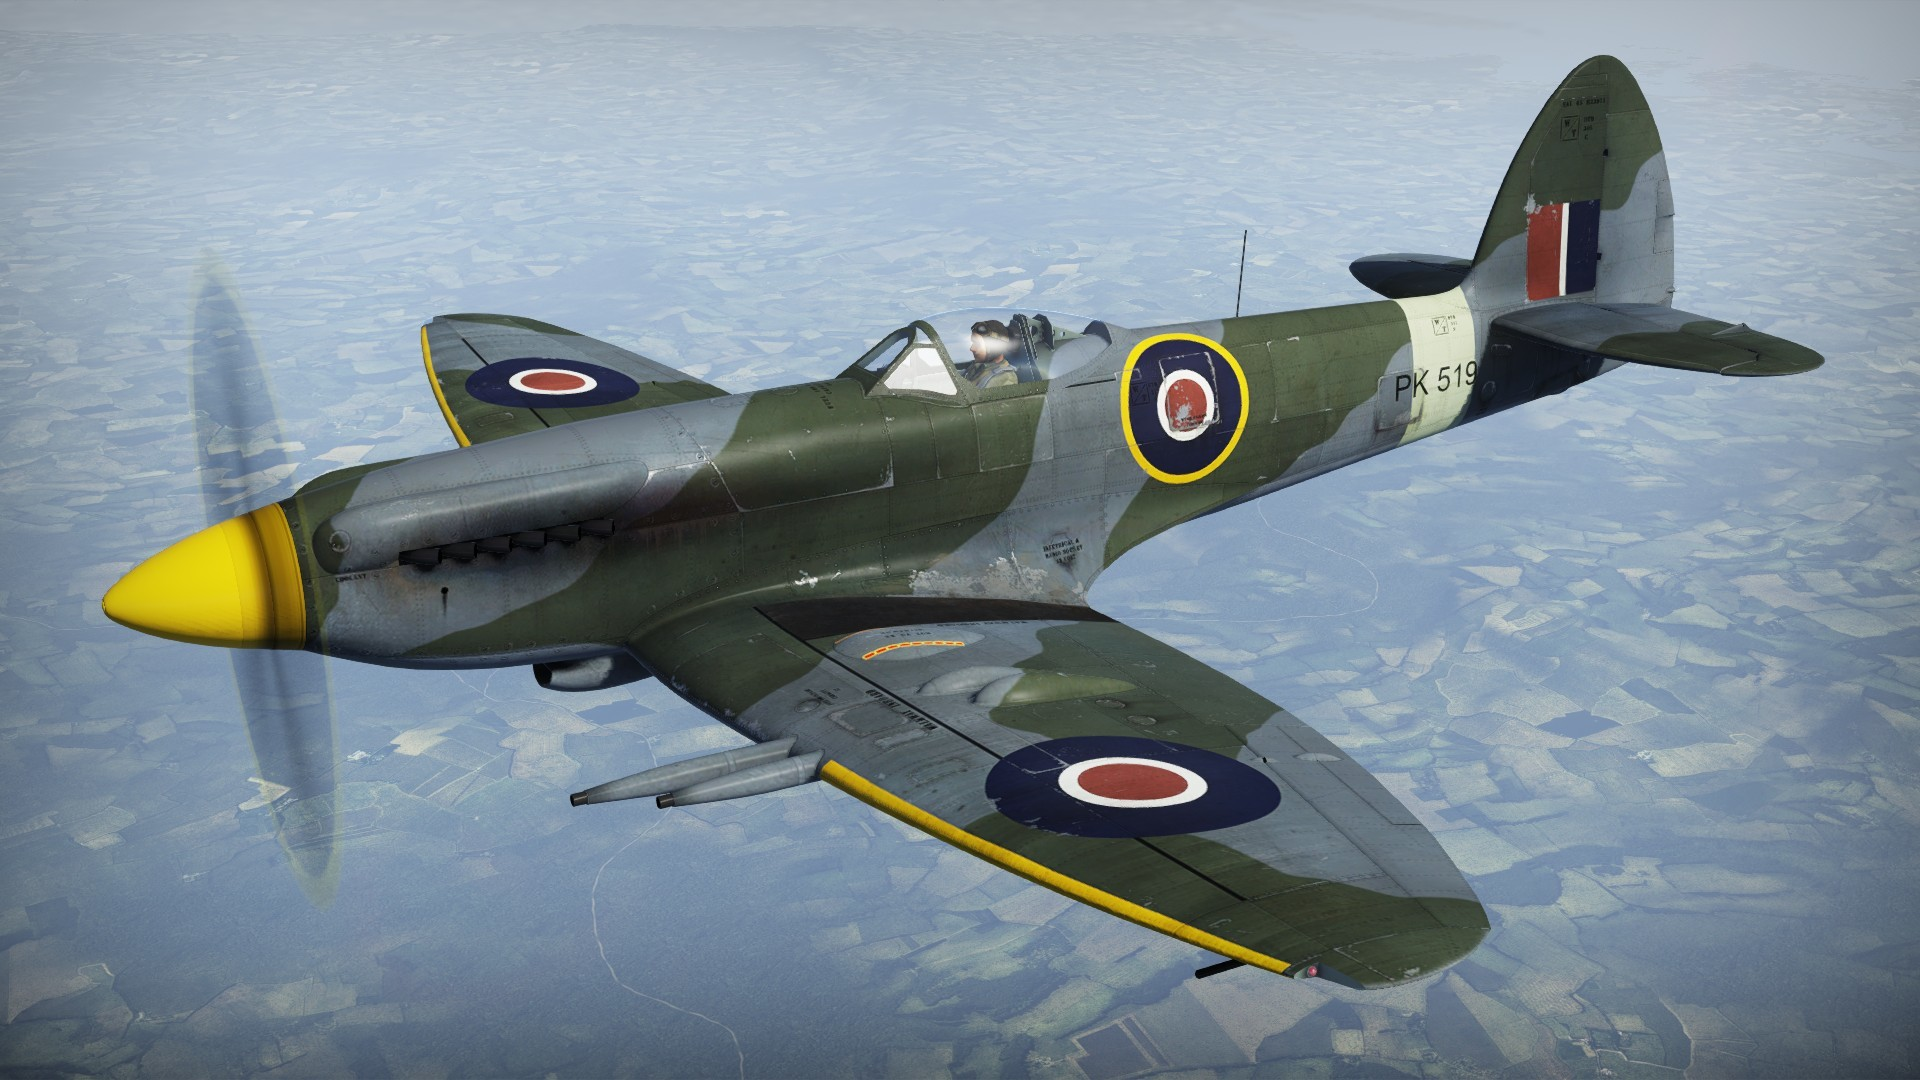 1920x1080 Supermarine Spitfire wallpaper | RAF Spitfire | Pinterest | Supermarine  spitfire, Aircraft and Planes